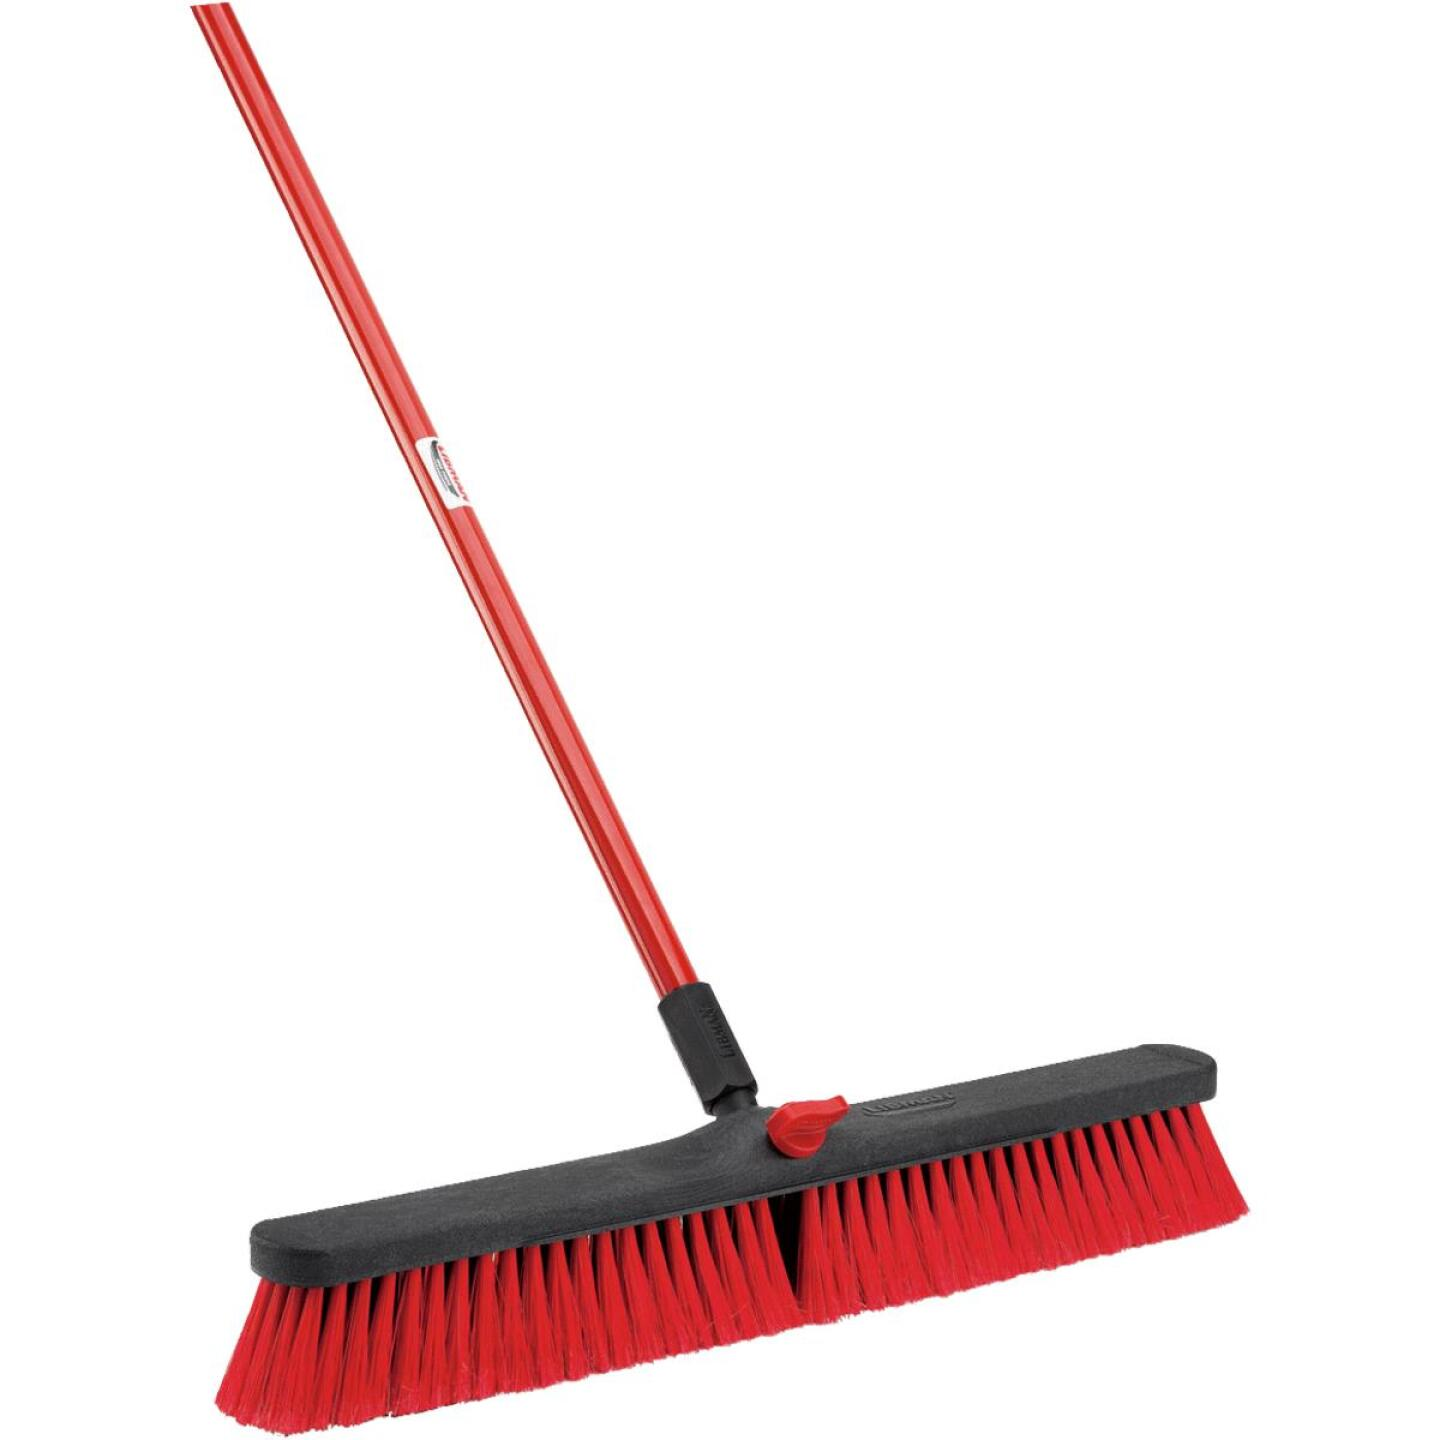 Libman 24 In. W. x 64 In. L. Steel Handle Multi-Surface Medium Sweep Push Broom Image 1